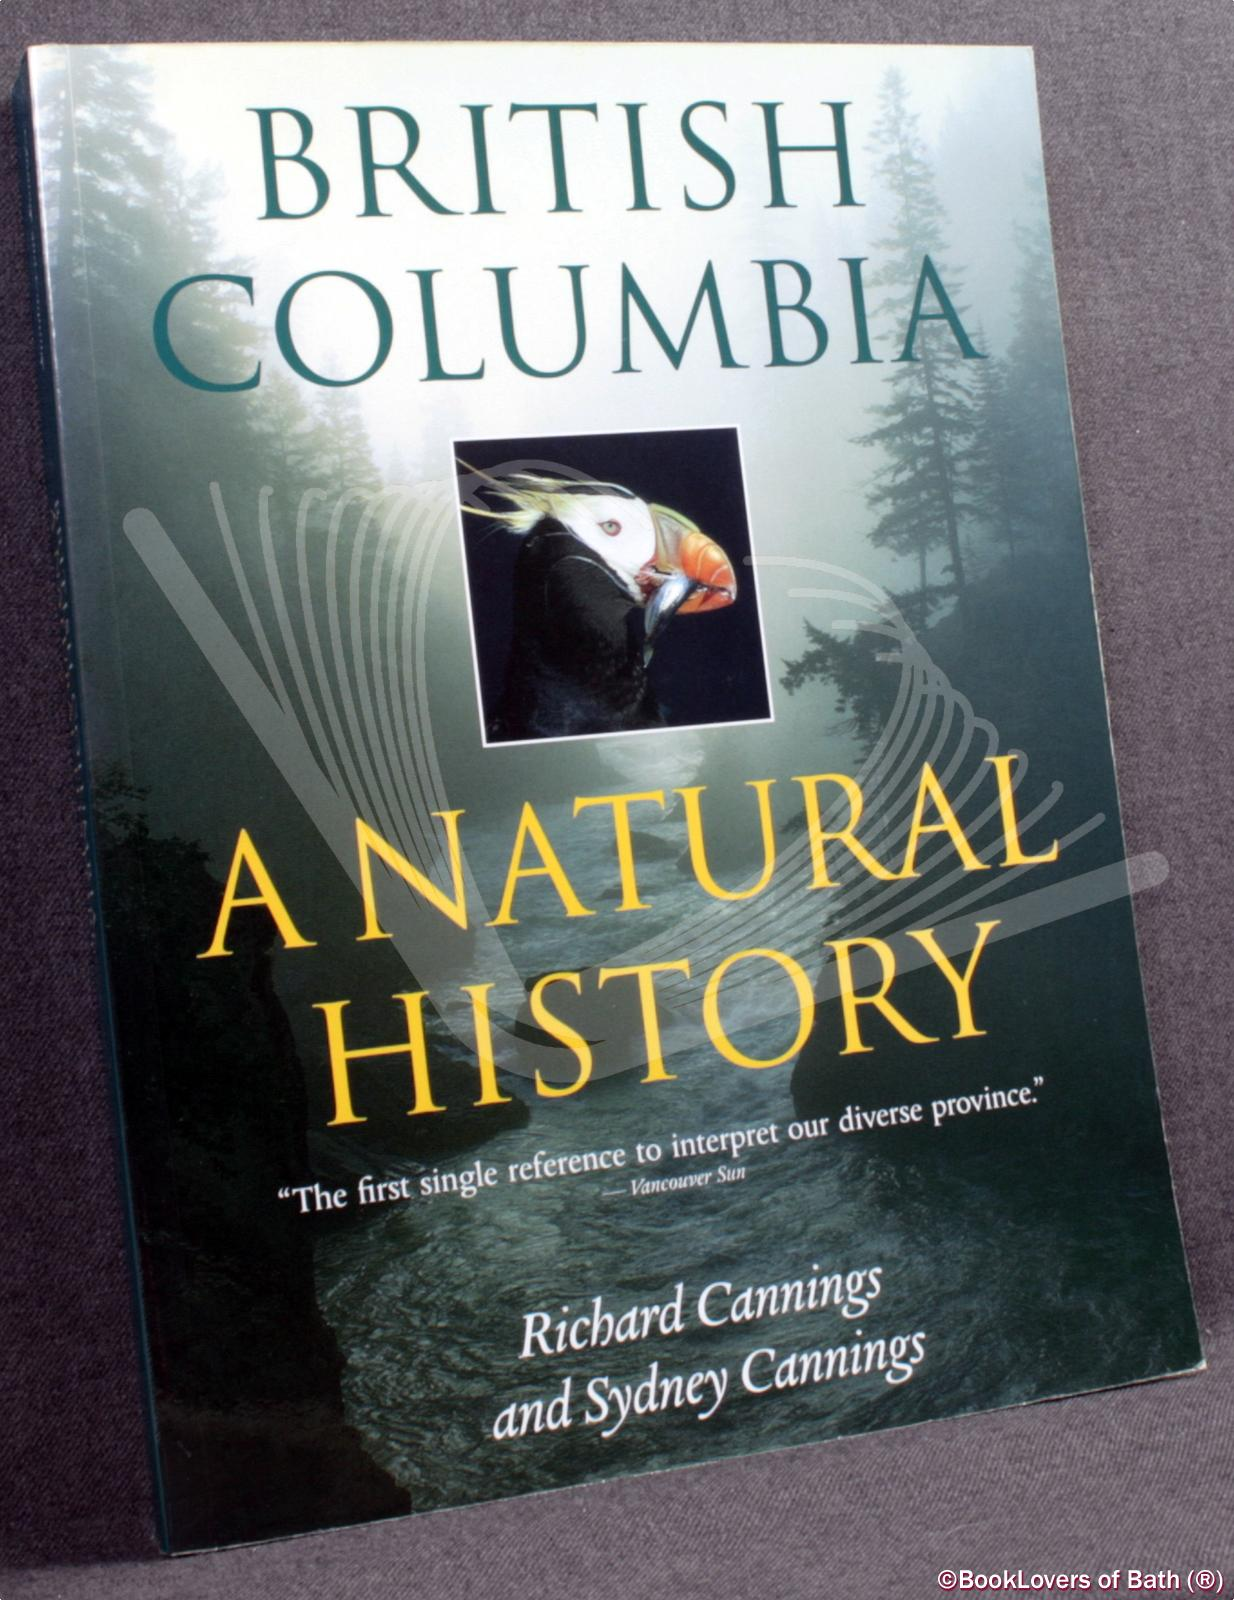 British Columbia: A Natural History - Richard Cannings & Sydney Cannings